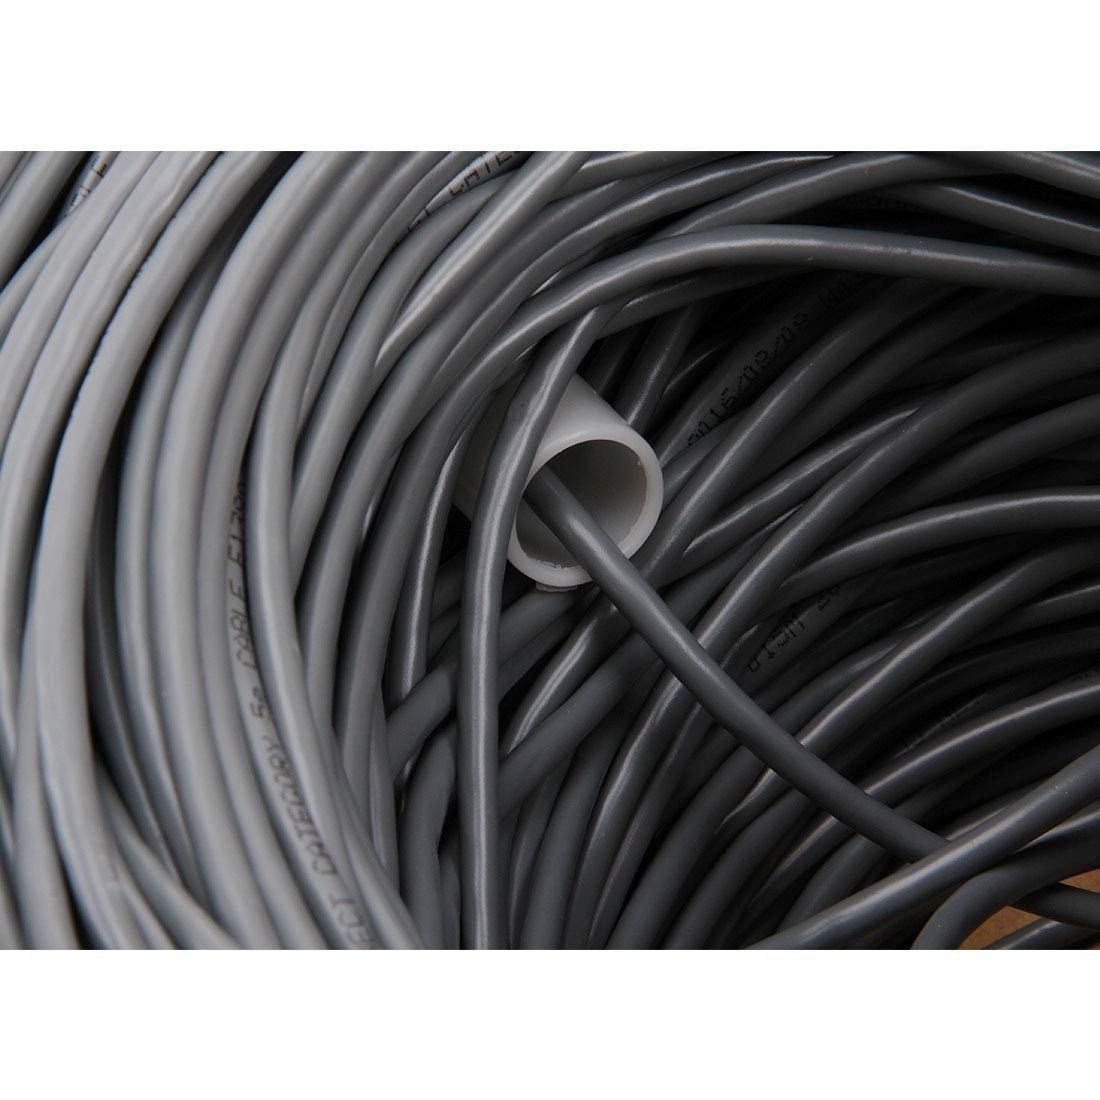 Diameter: 0.5mm Network Cables Copper Computer Cables LAN Cable CAT5E Data Cable Length: 305m SKU : S-PC-0710B